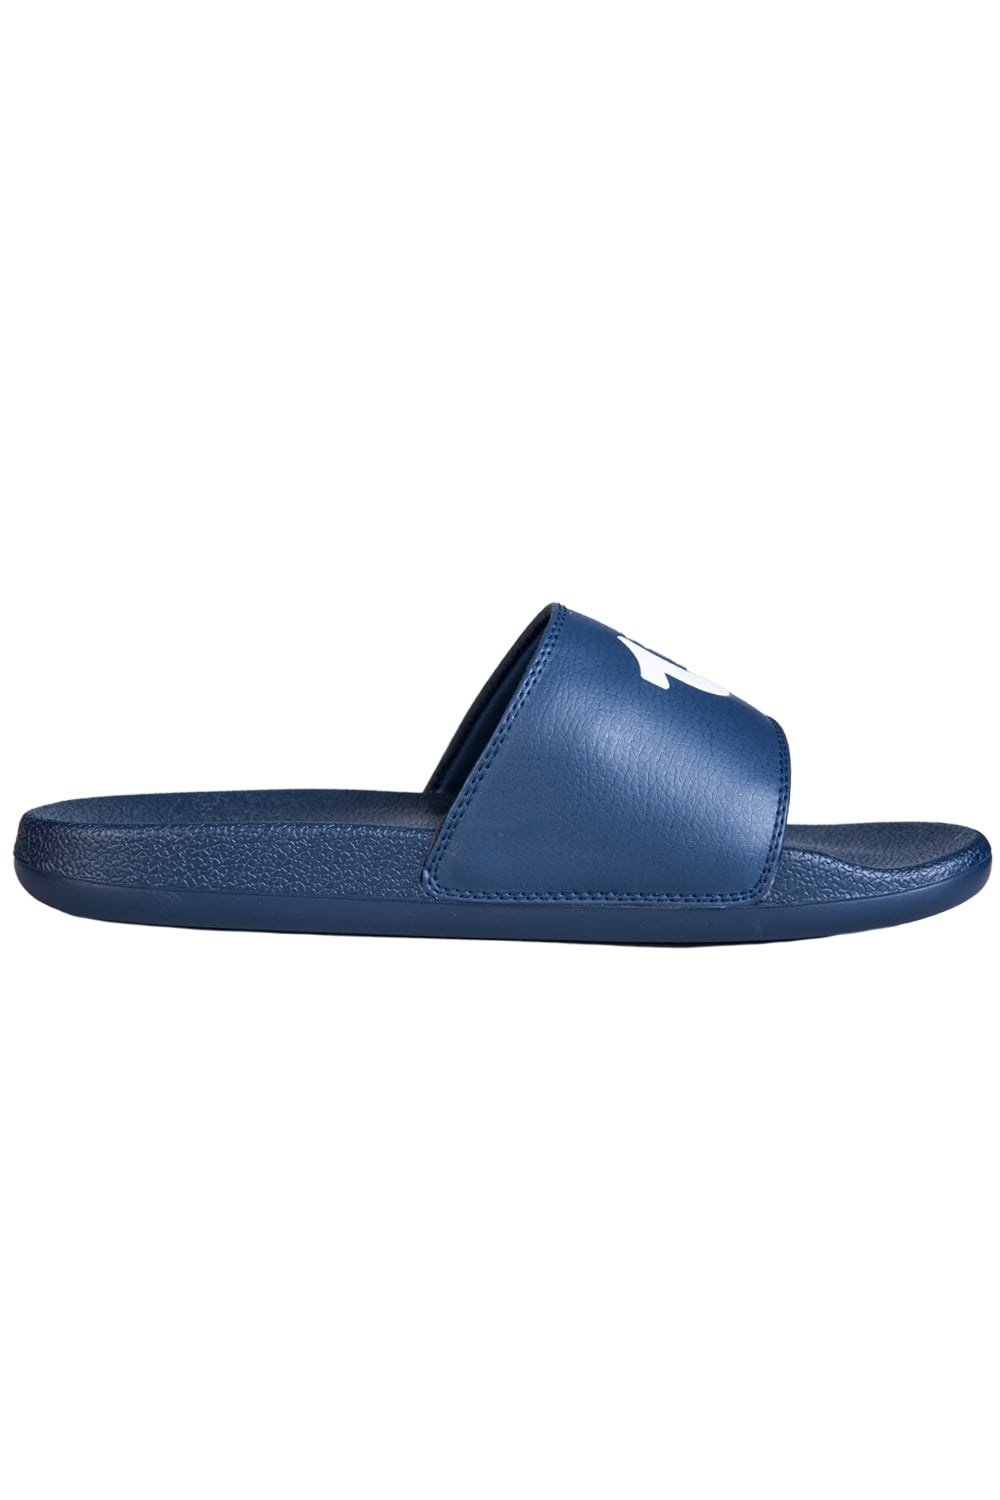 True Religion TRSHOE NEED TO UPDATE Flip Flops TRSHOE Religion 003 Mens New e18588